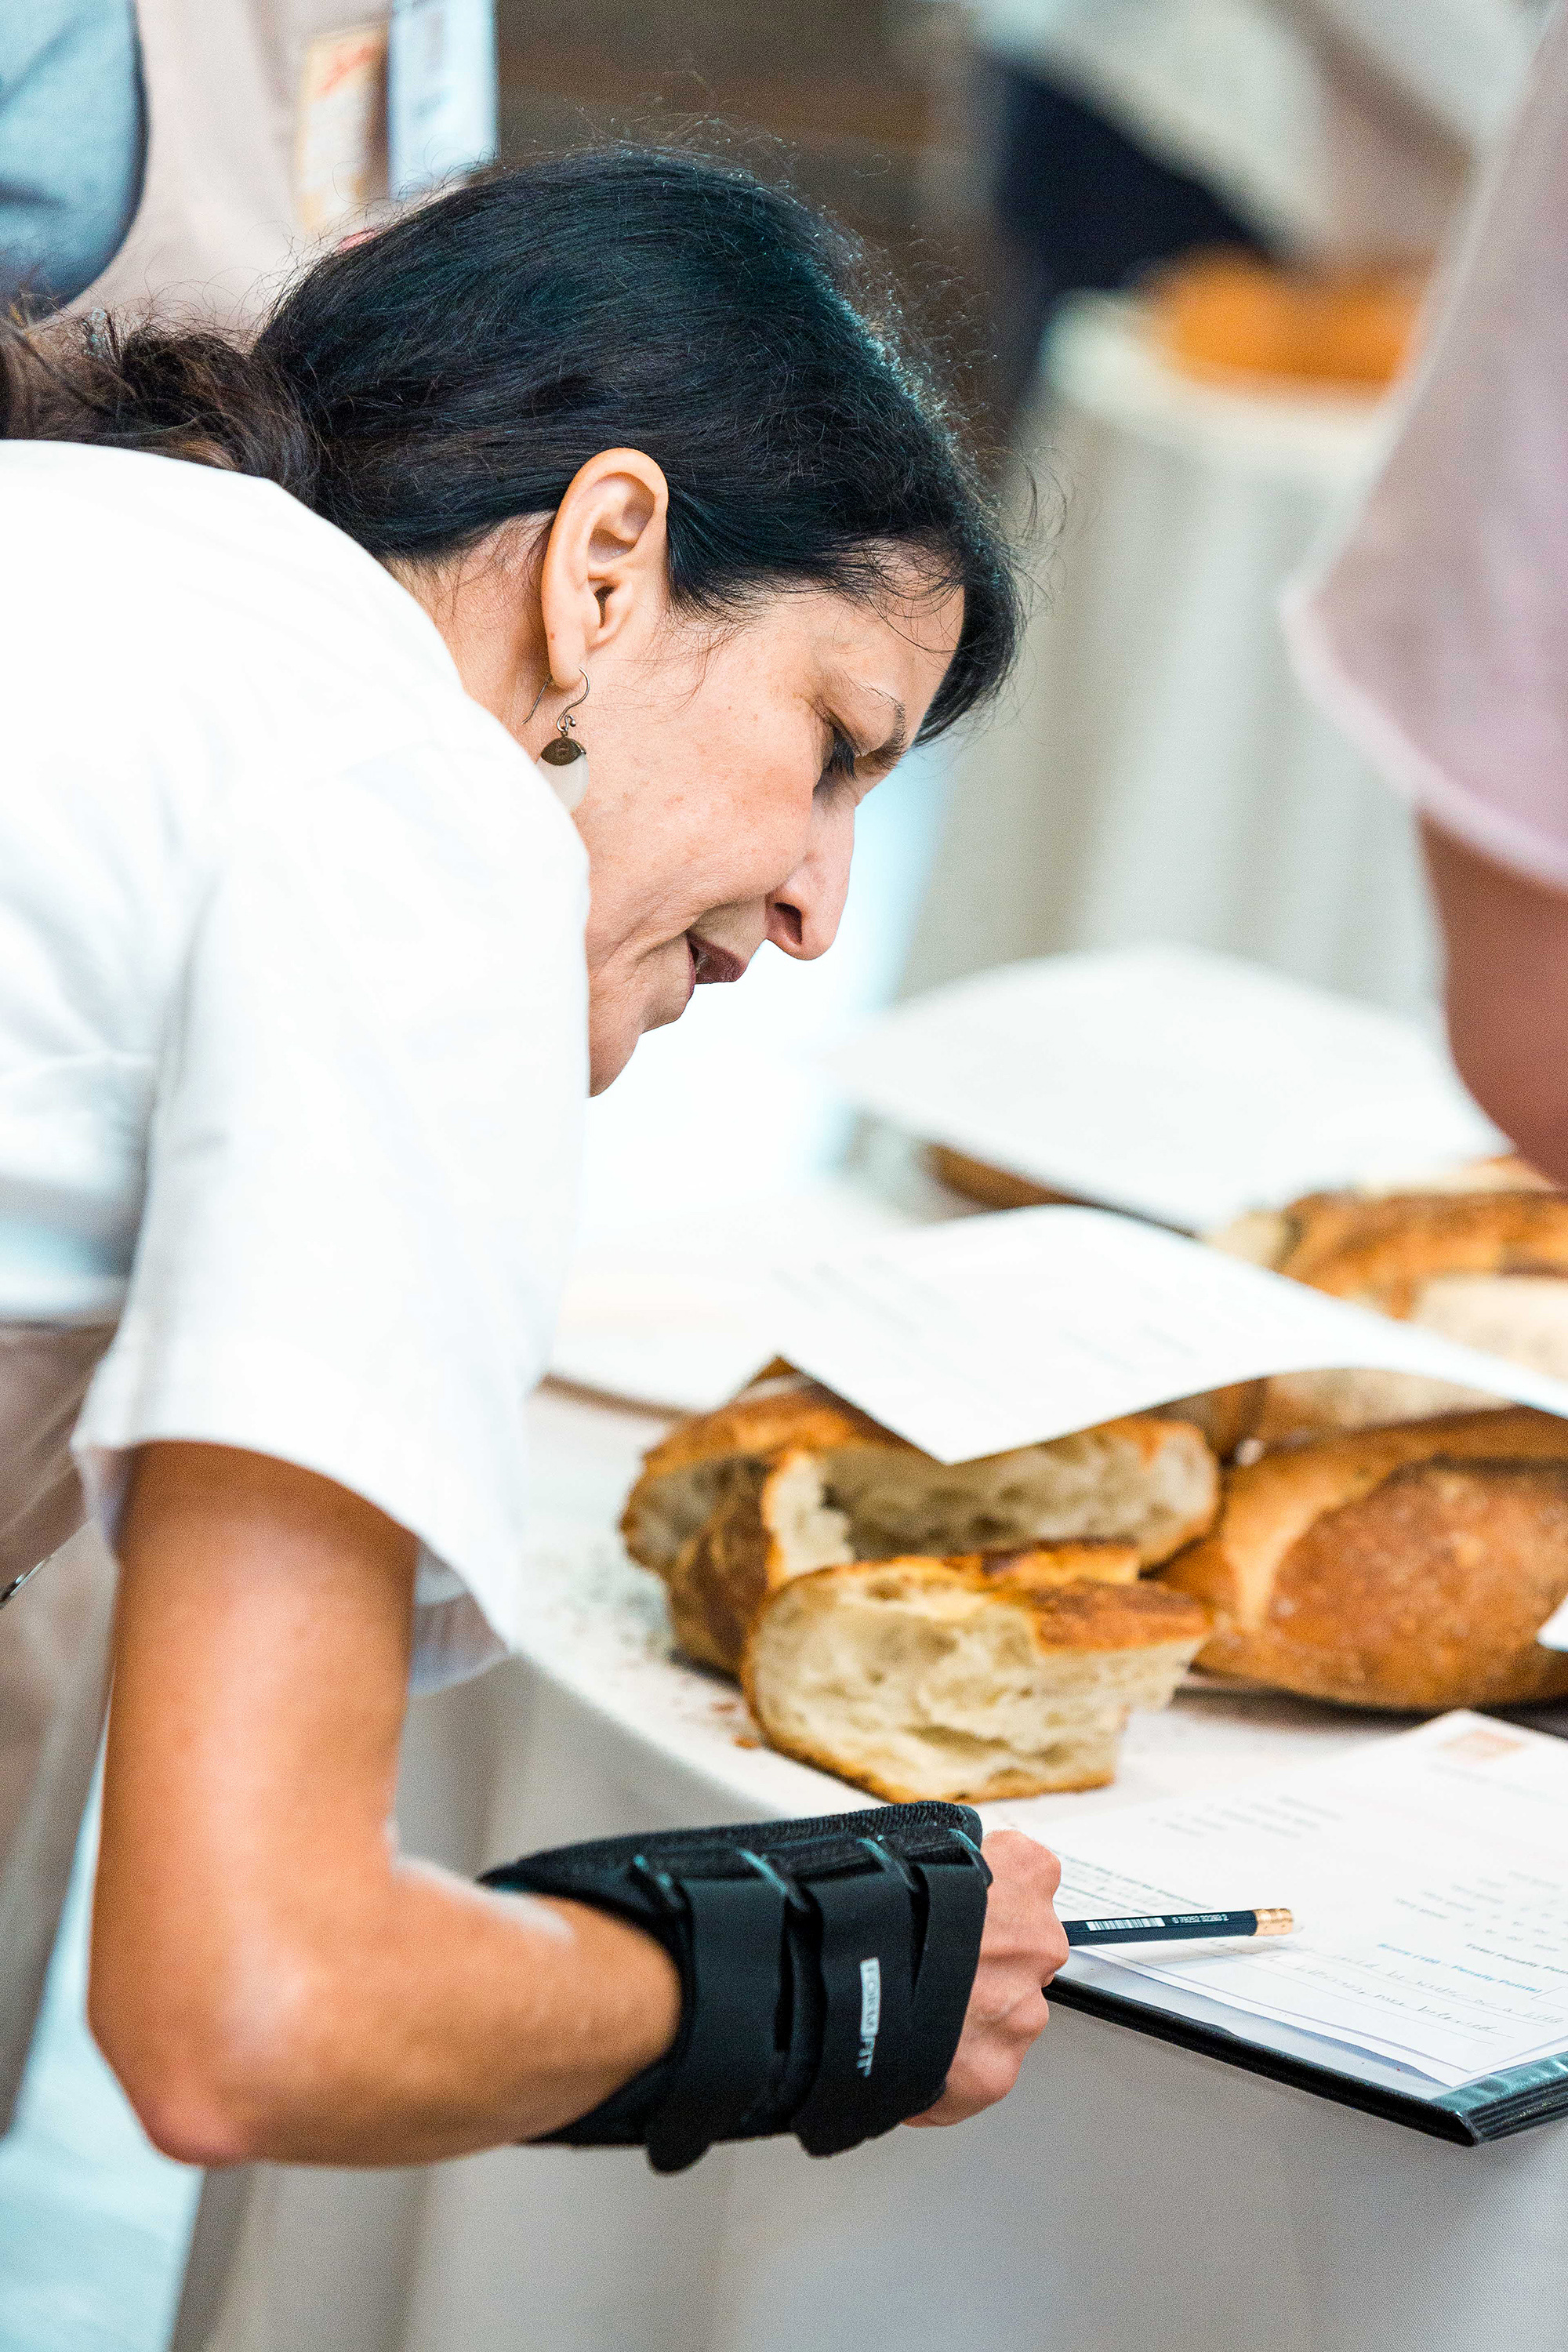 world bread awards usa judging woman scrutinizing entry